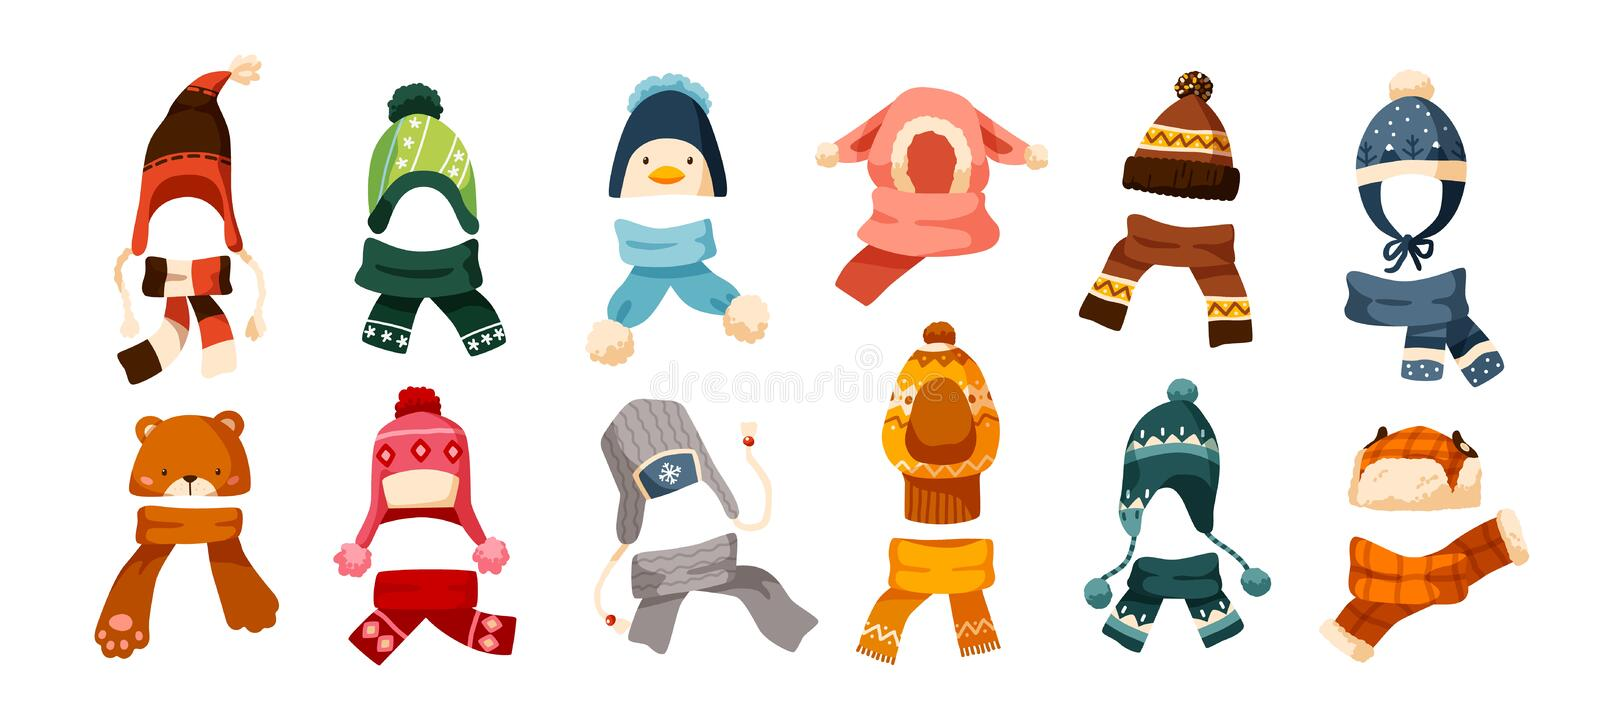 Collection of children s winter knit hats and scarves of various types isolated on white background. Bundle of headgear royalty free illustration